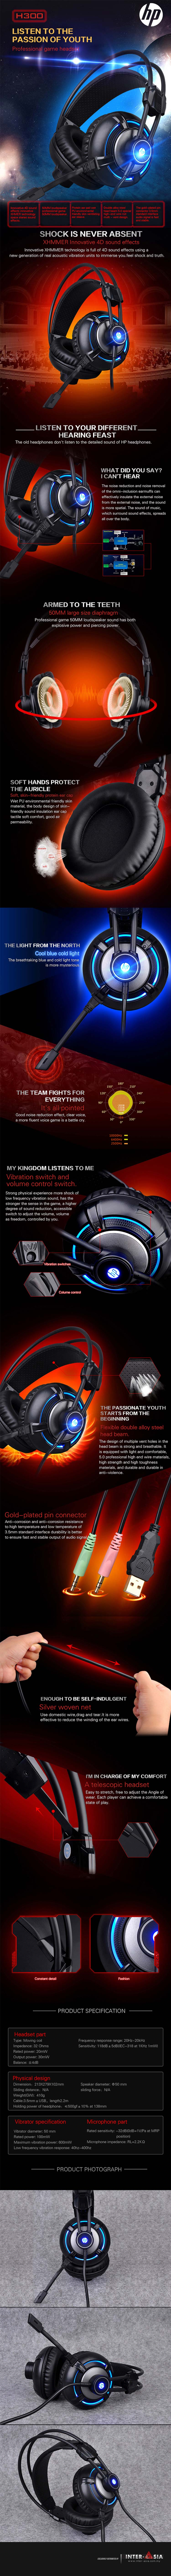 hp h300 High Performance Gaming Headphone